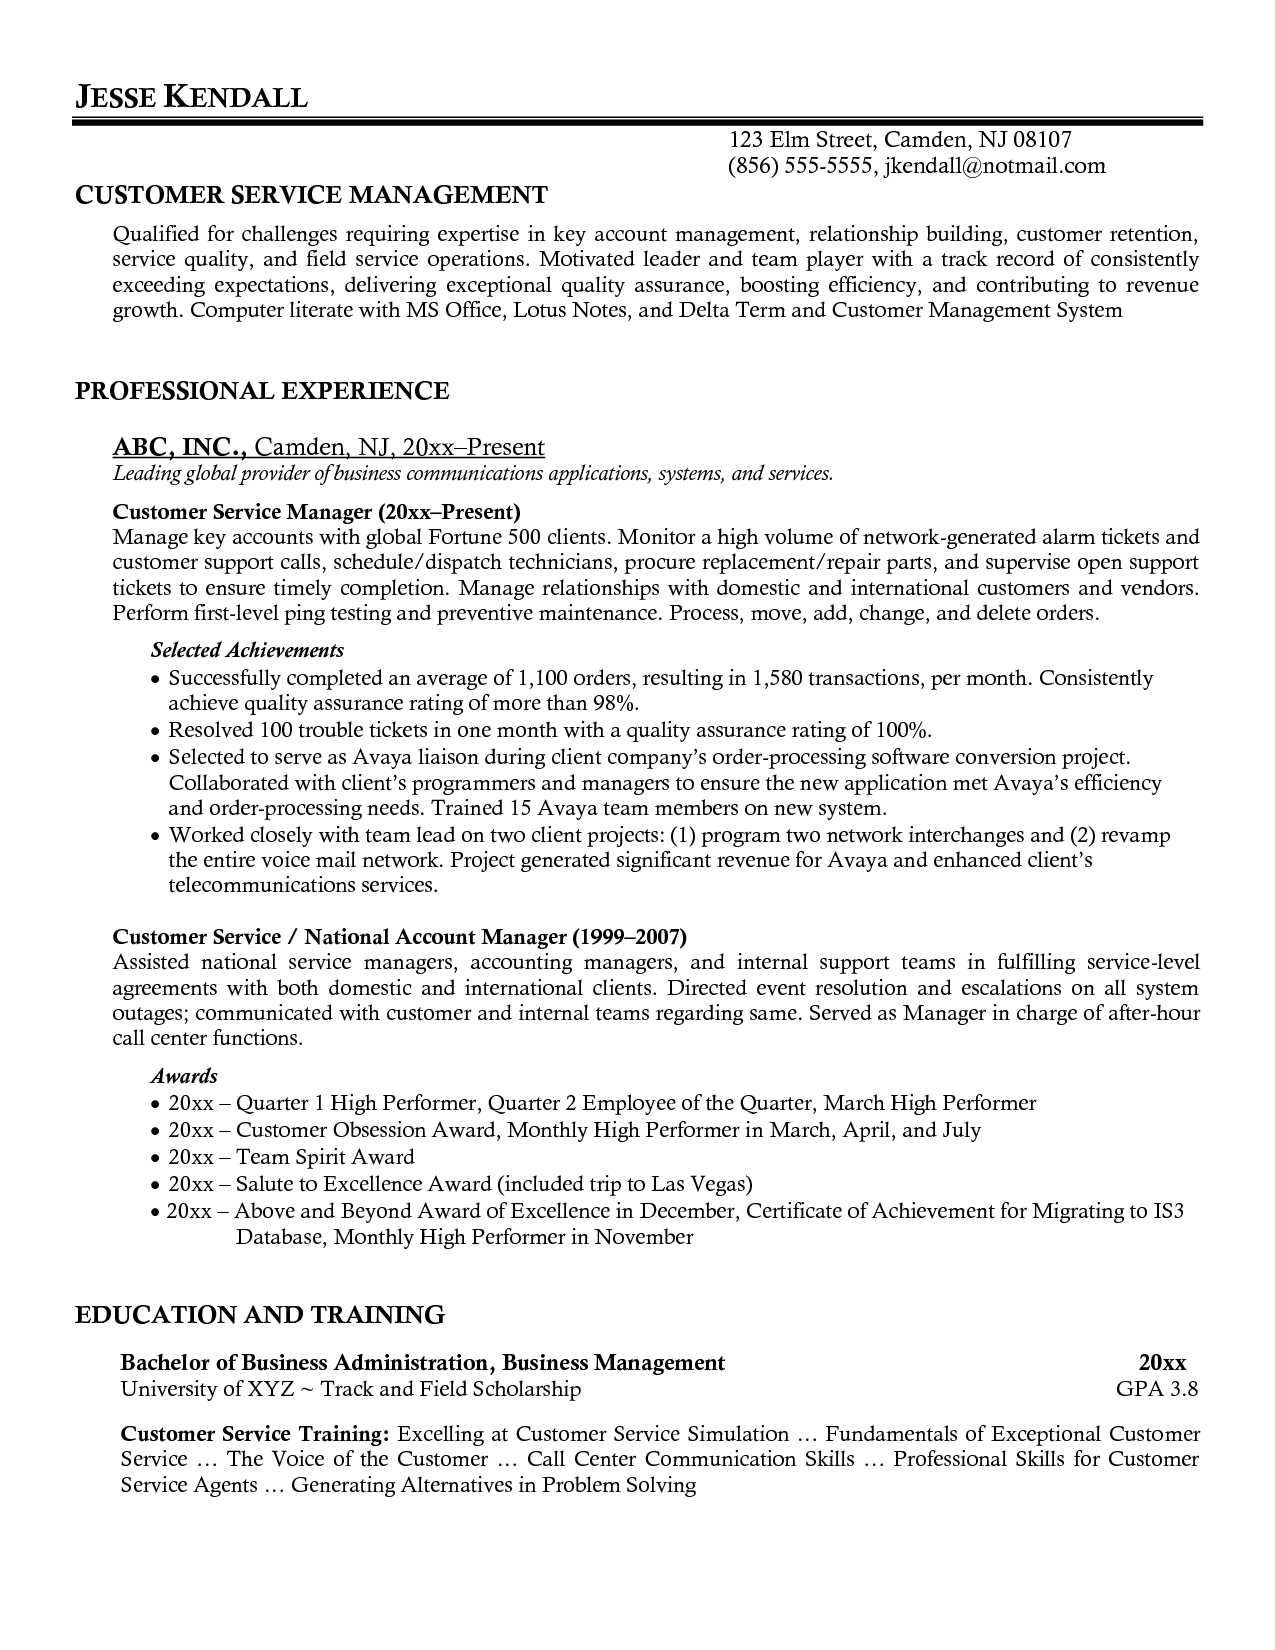 Certified Professional Resume Writers Canada Executive Application Letter  For Ojt Accounting Students  Executive Resume Writers